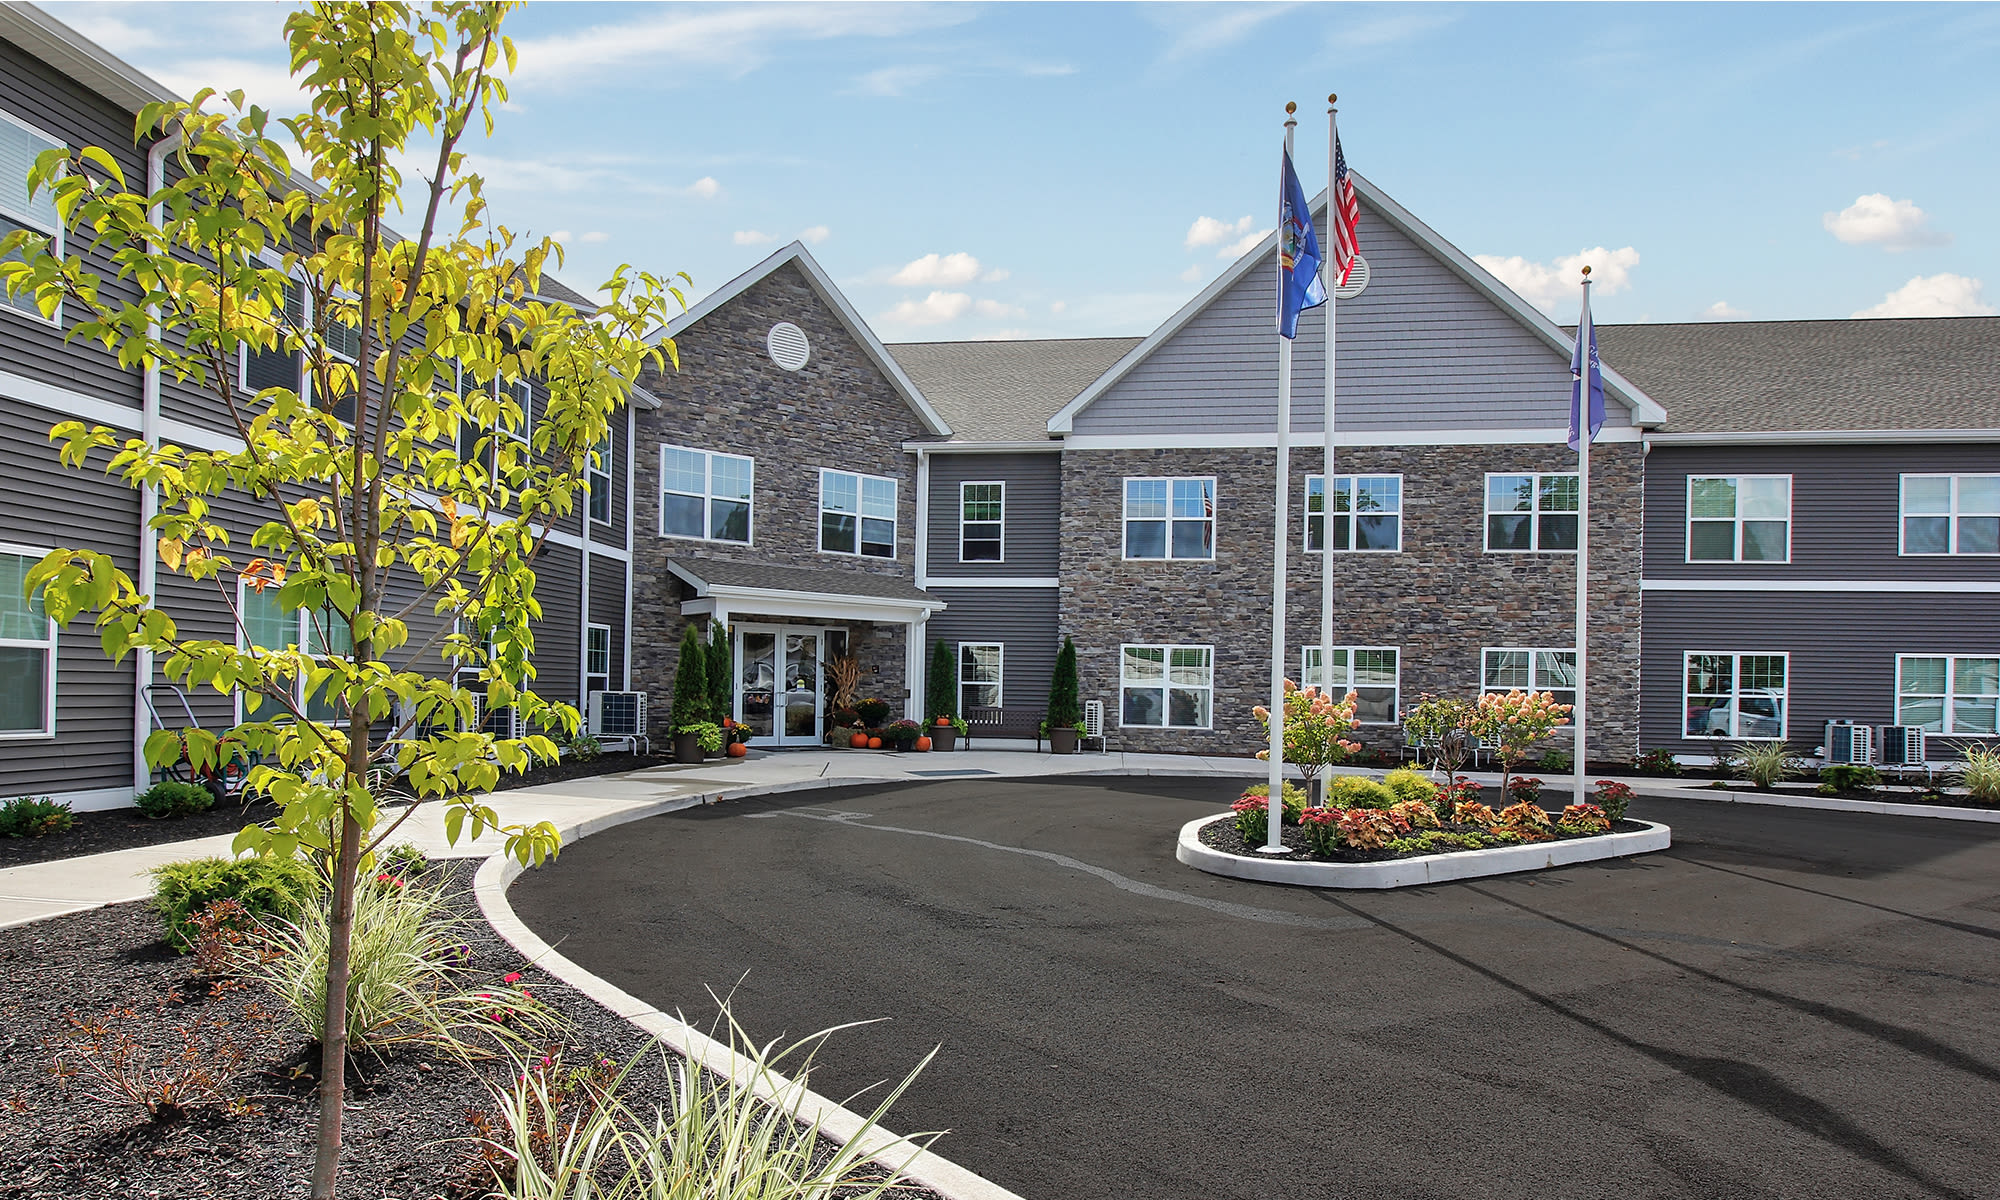 Village Heights Senior Apartments in Fairport, New York